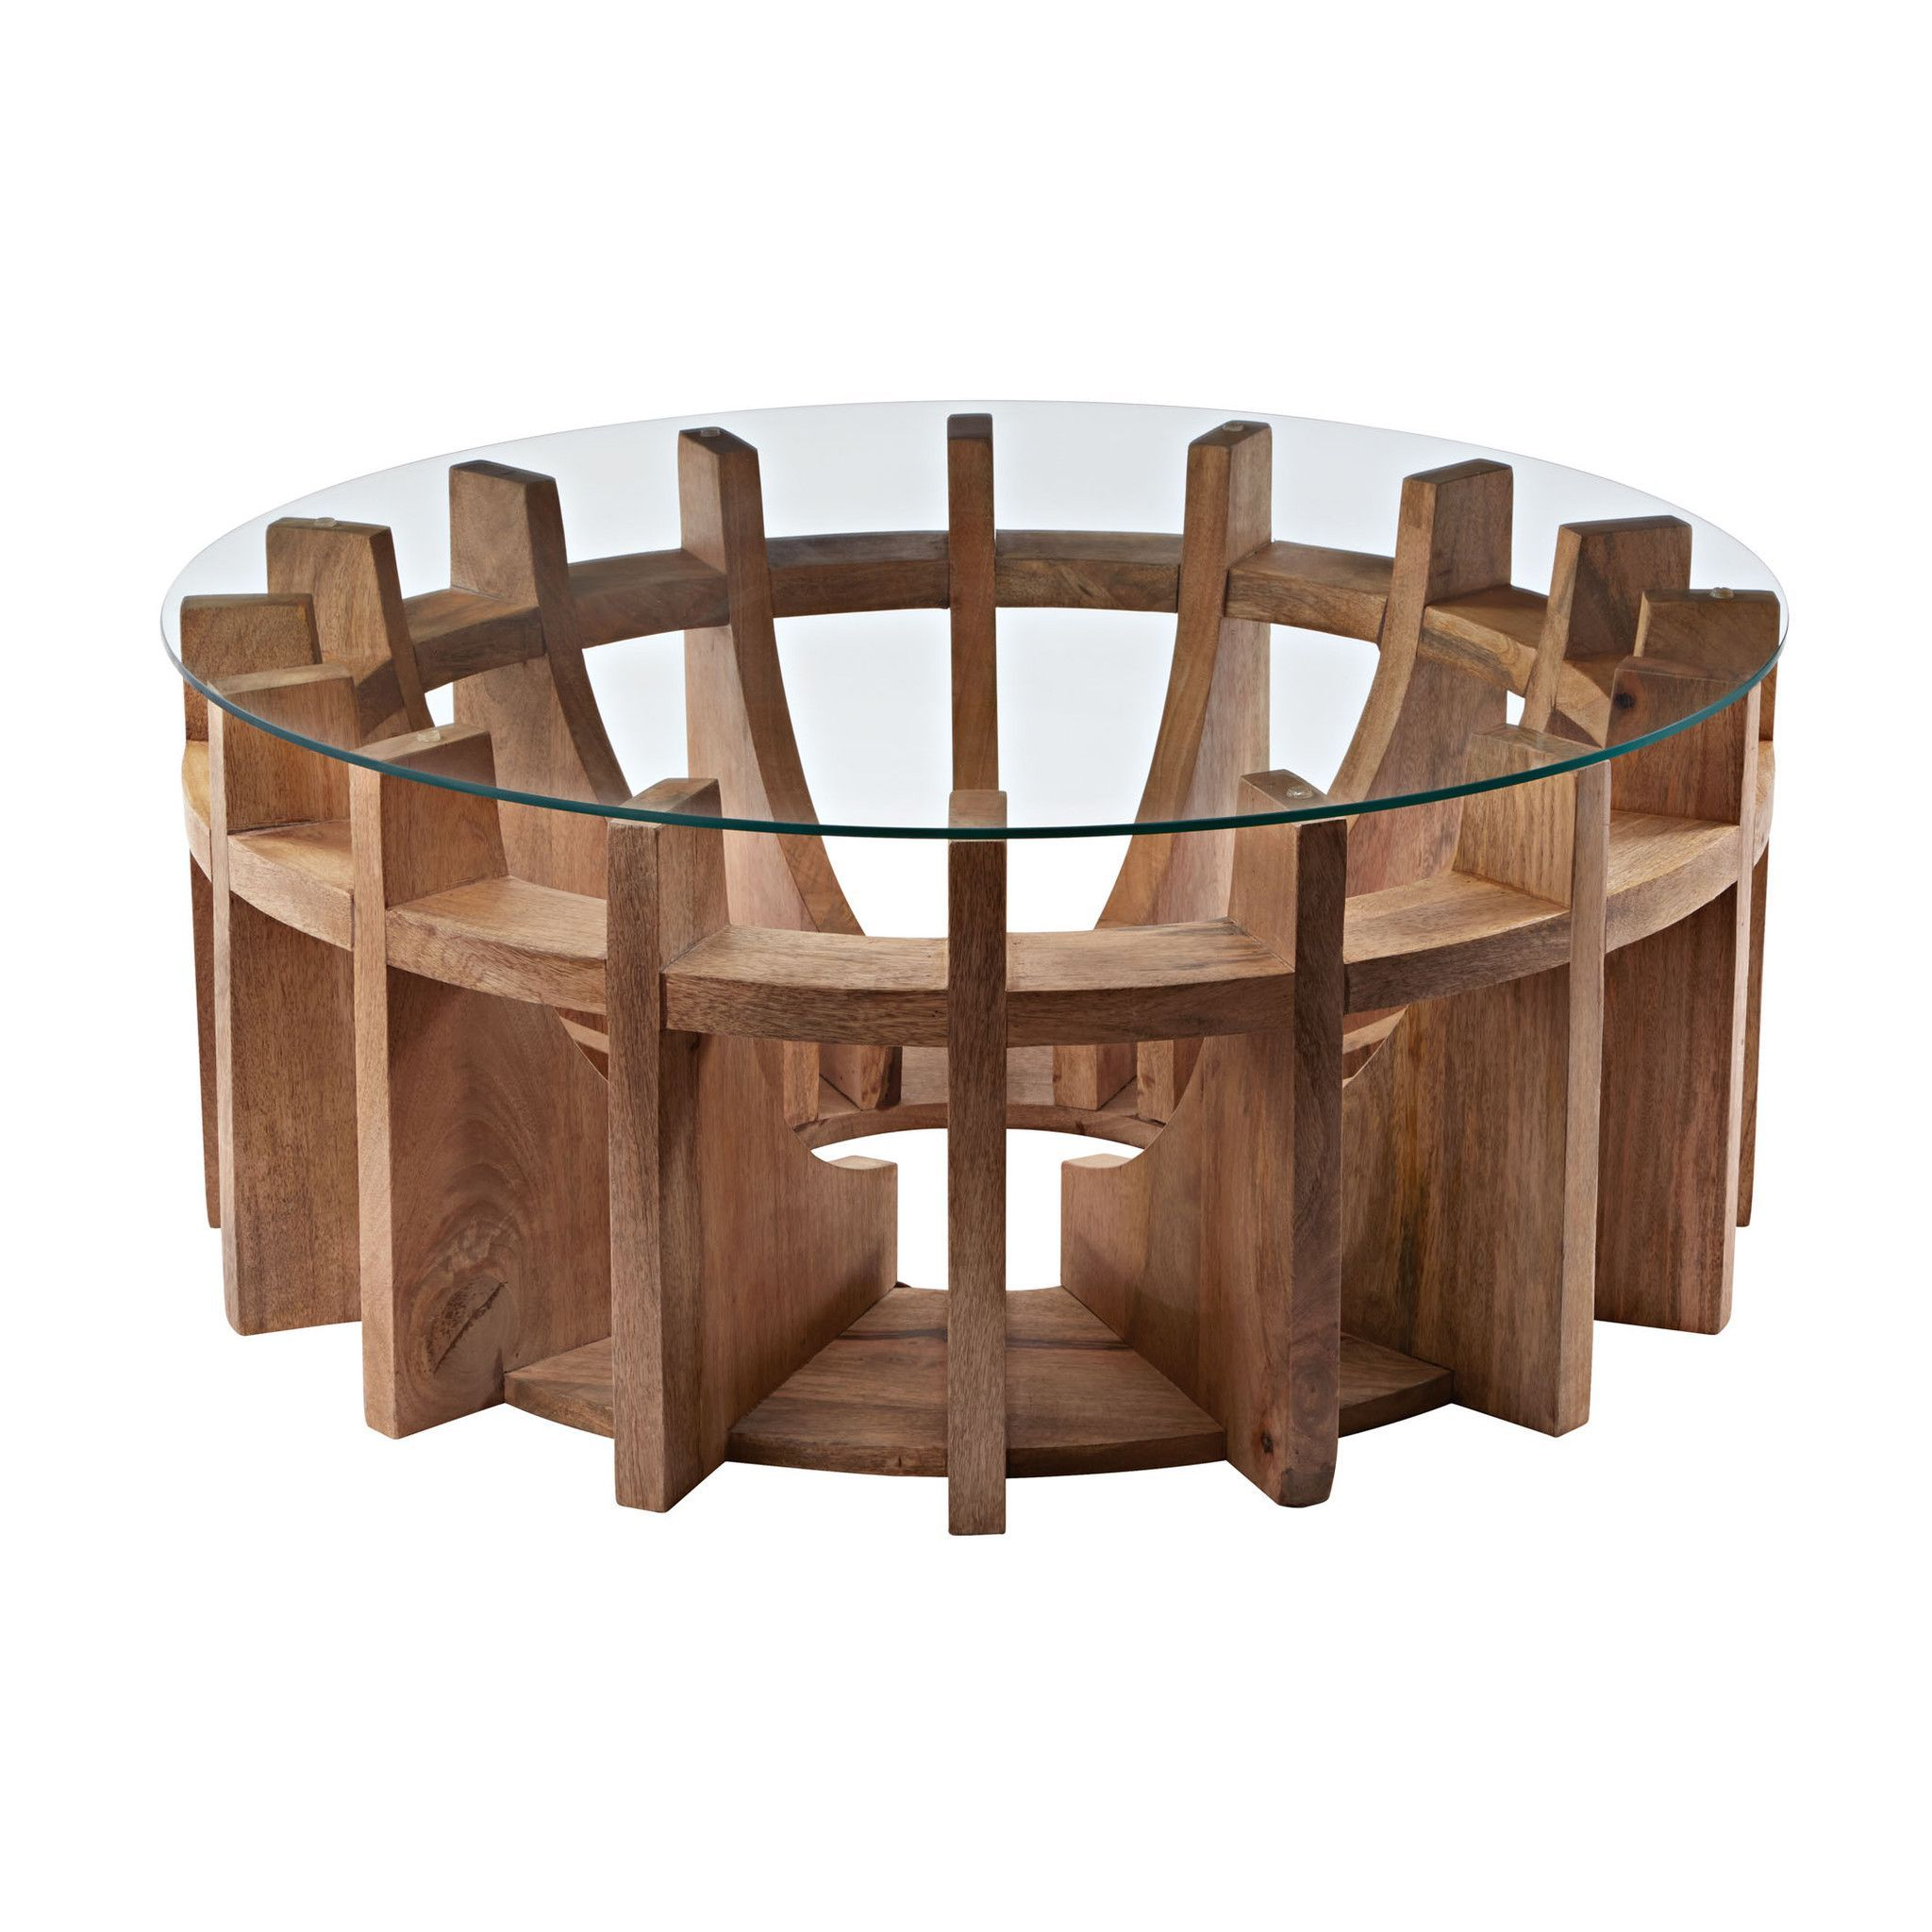 Wooden Sundial Coffee Table design by Lazy Susan Coffee table